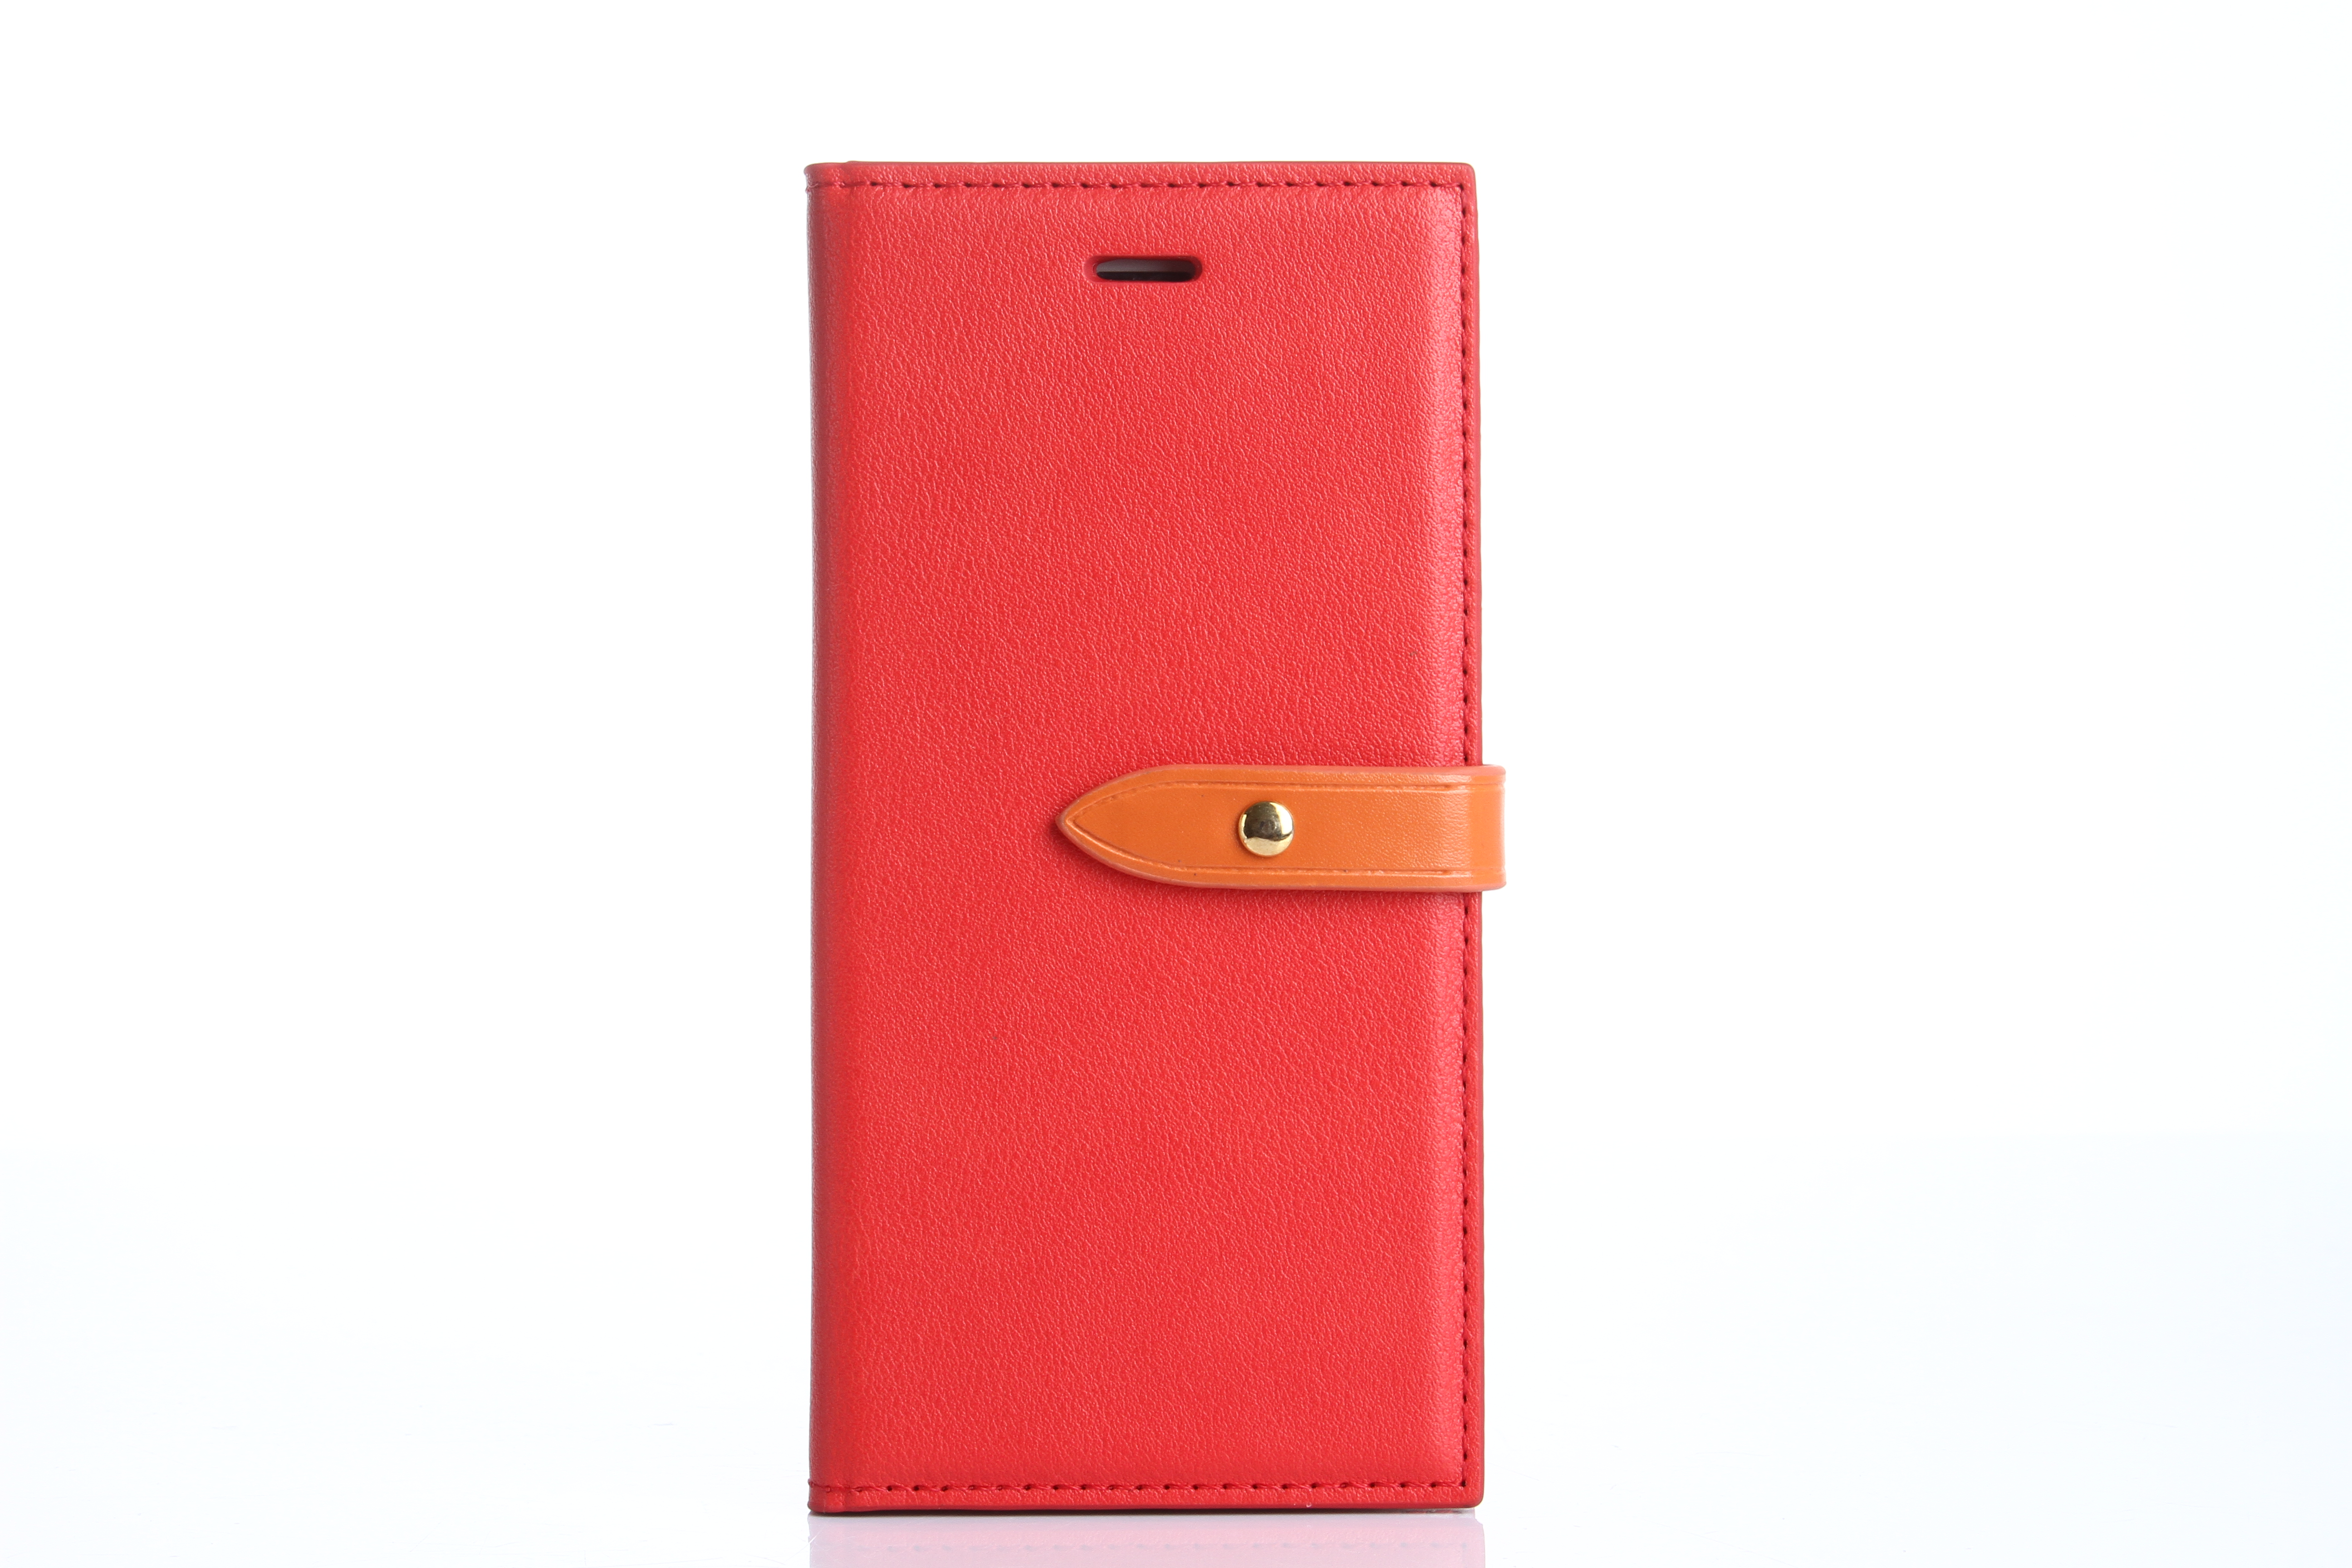 PU Leather Case for Samsung Galaxy S6 Edge Case for Samsung S6Edge SM-G9250 G925J/L/K/S/Z/T/F/FQ/I/R7 Dermatoglyphics phone bag